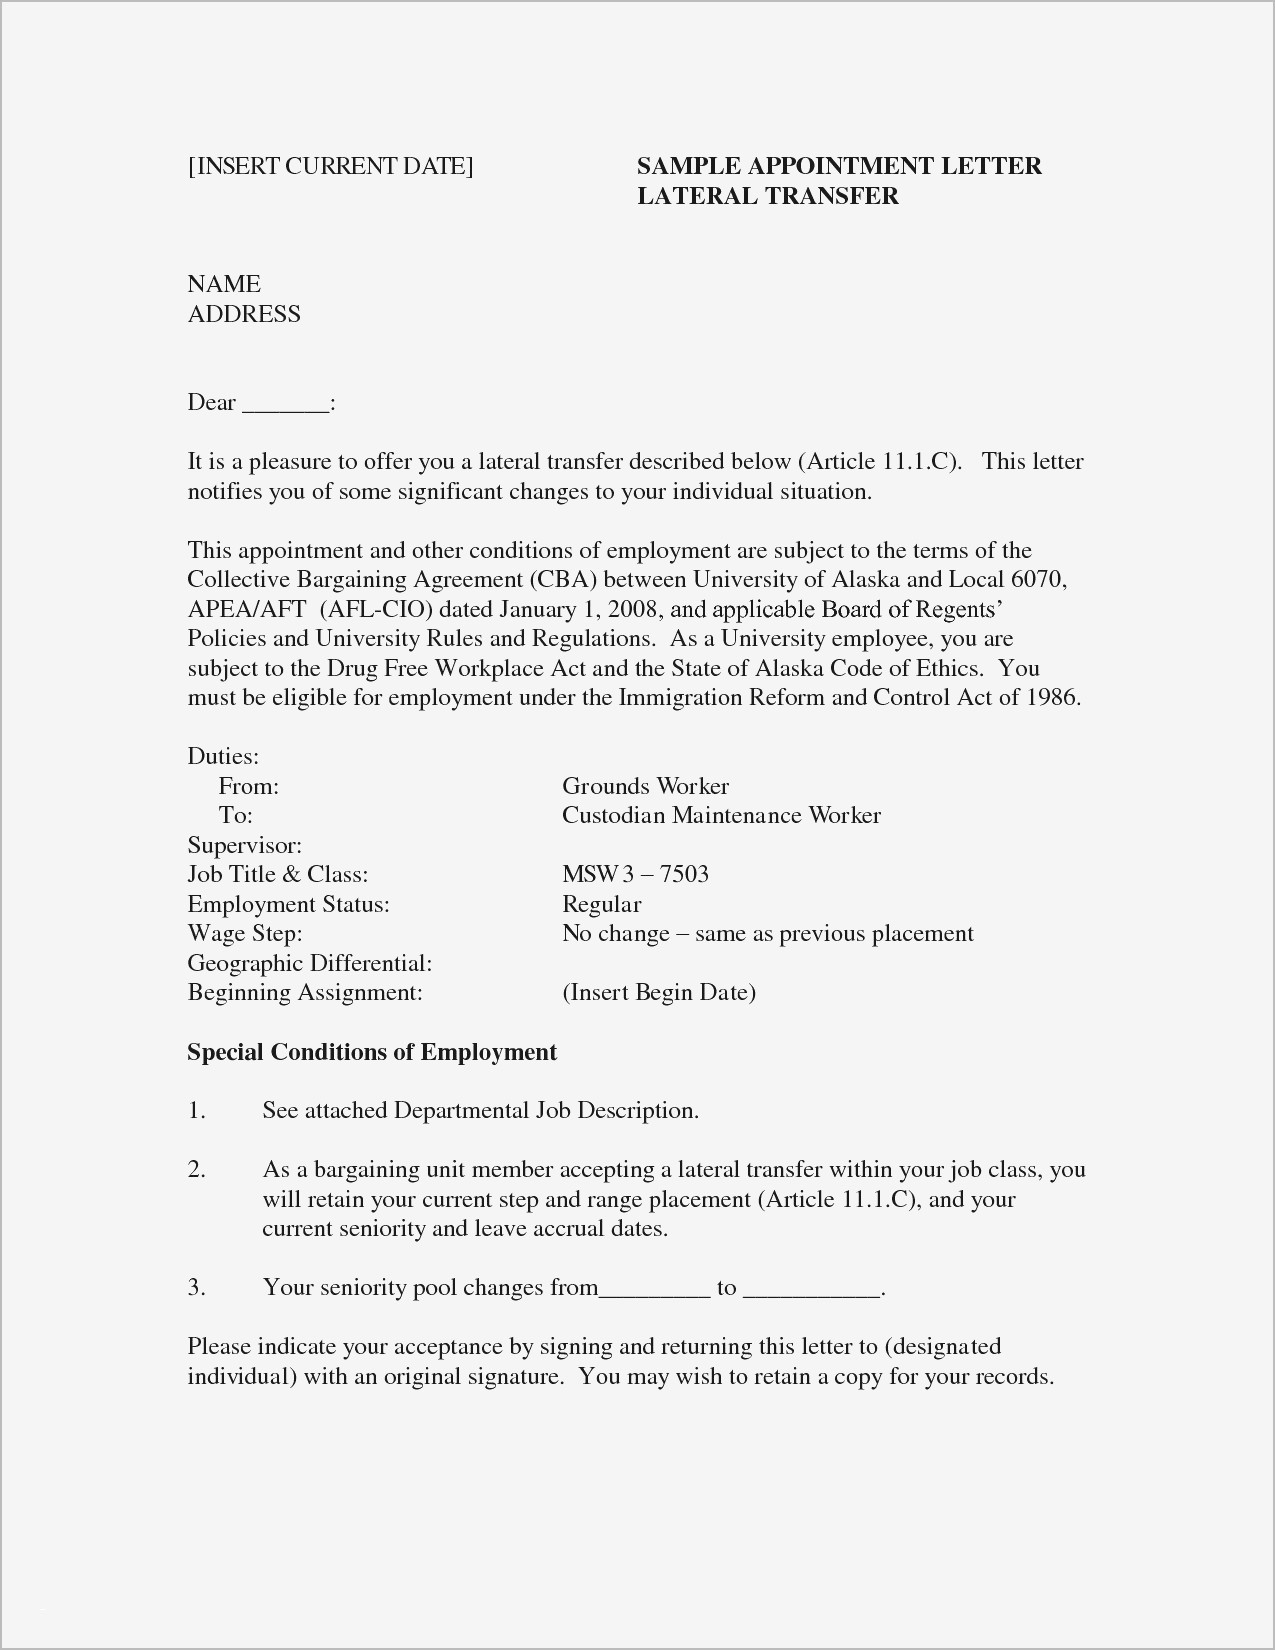 copy and paste resume templates example-Copy And Paste Resume Templates Best Simple Job Resume Examples Best Fresh Resume 0d Resume For 10-g